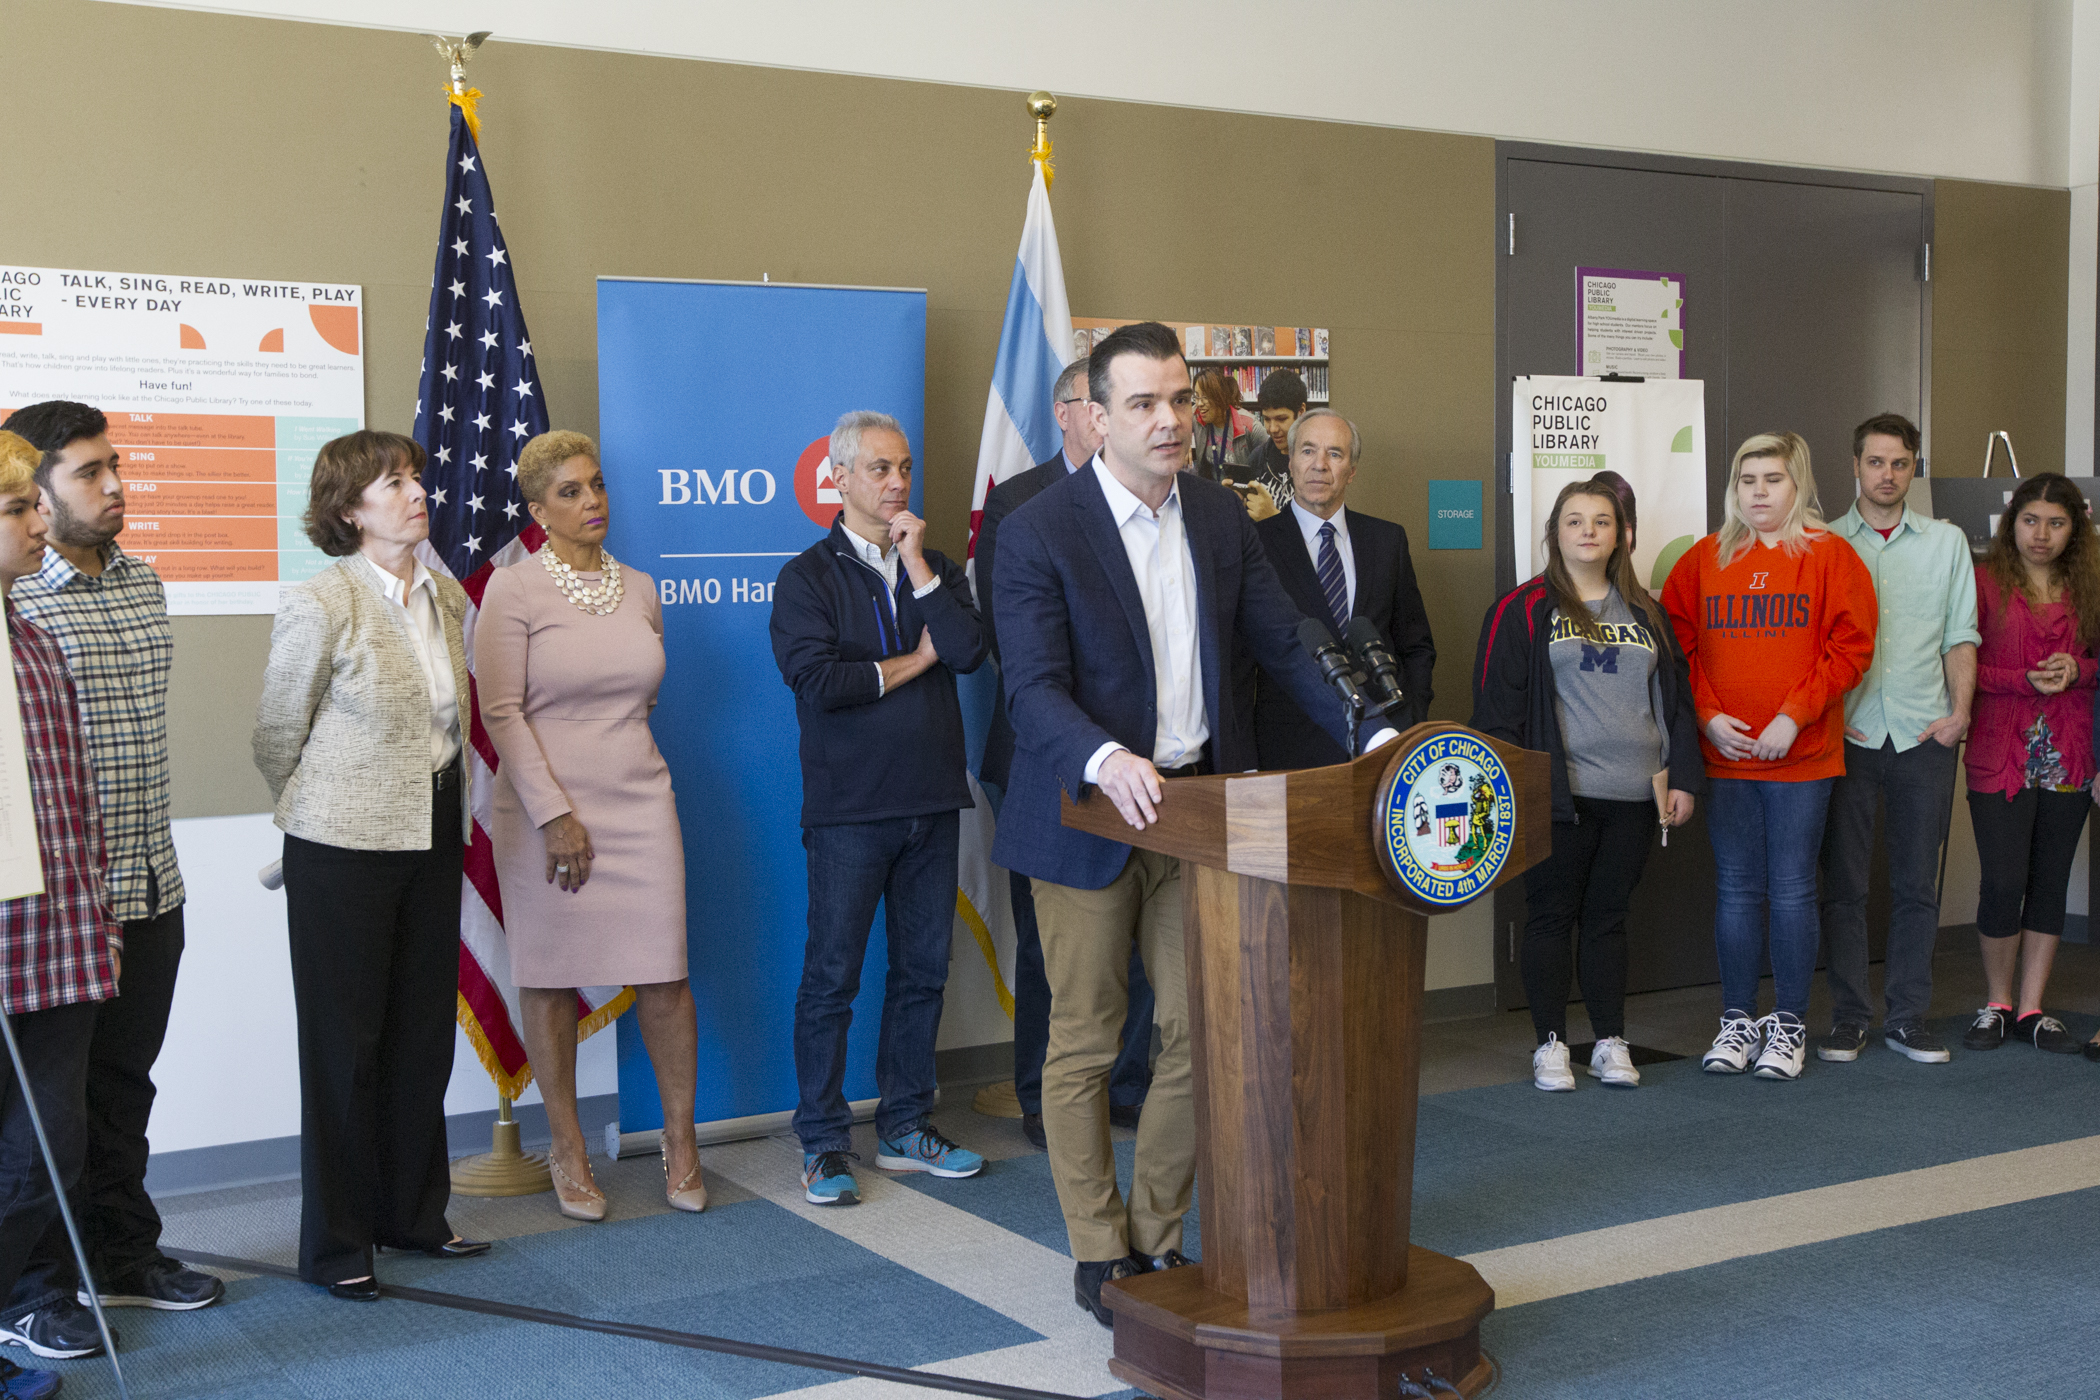 Mayor Emanuel Chicago Public Library Announce New Public and